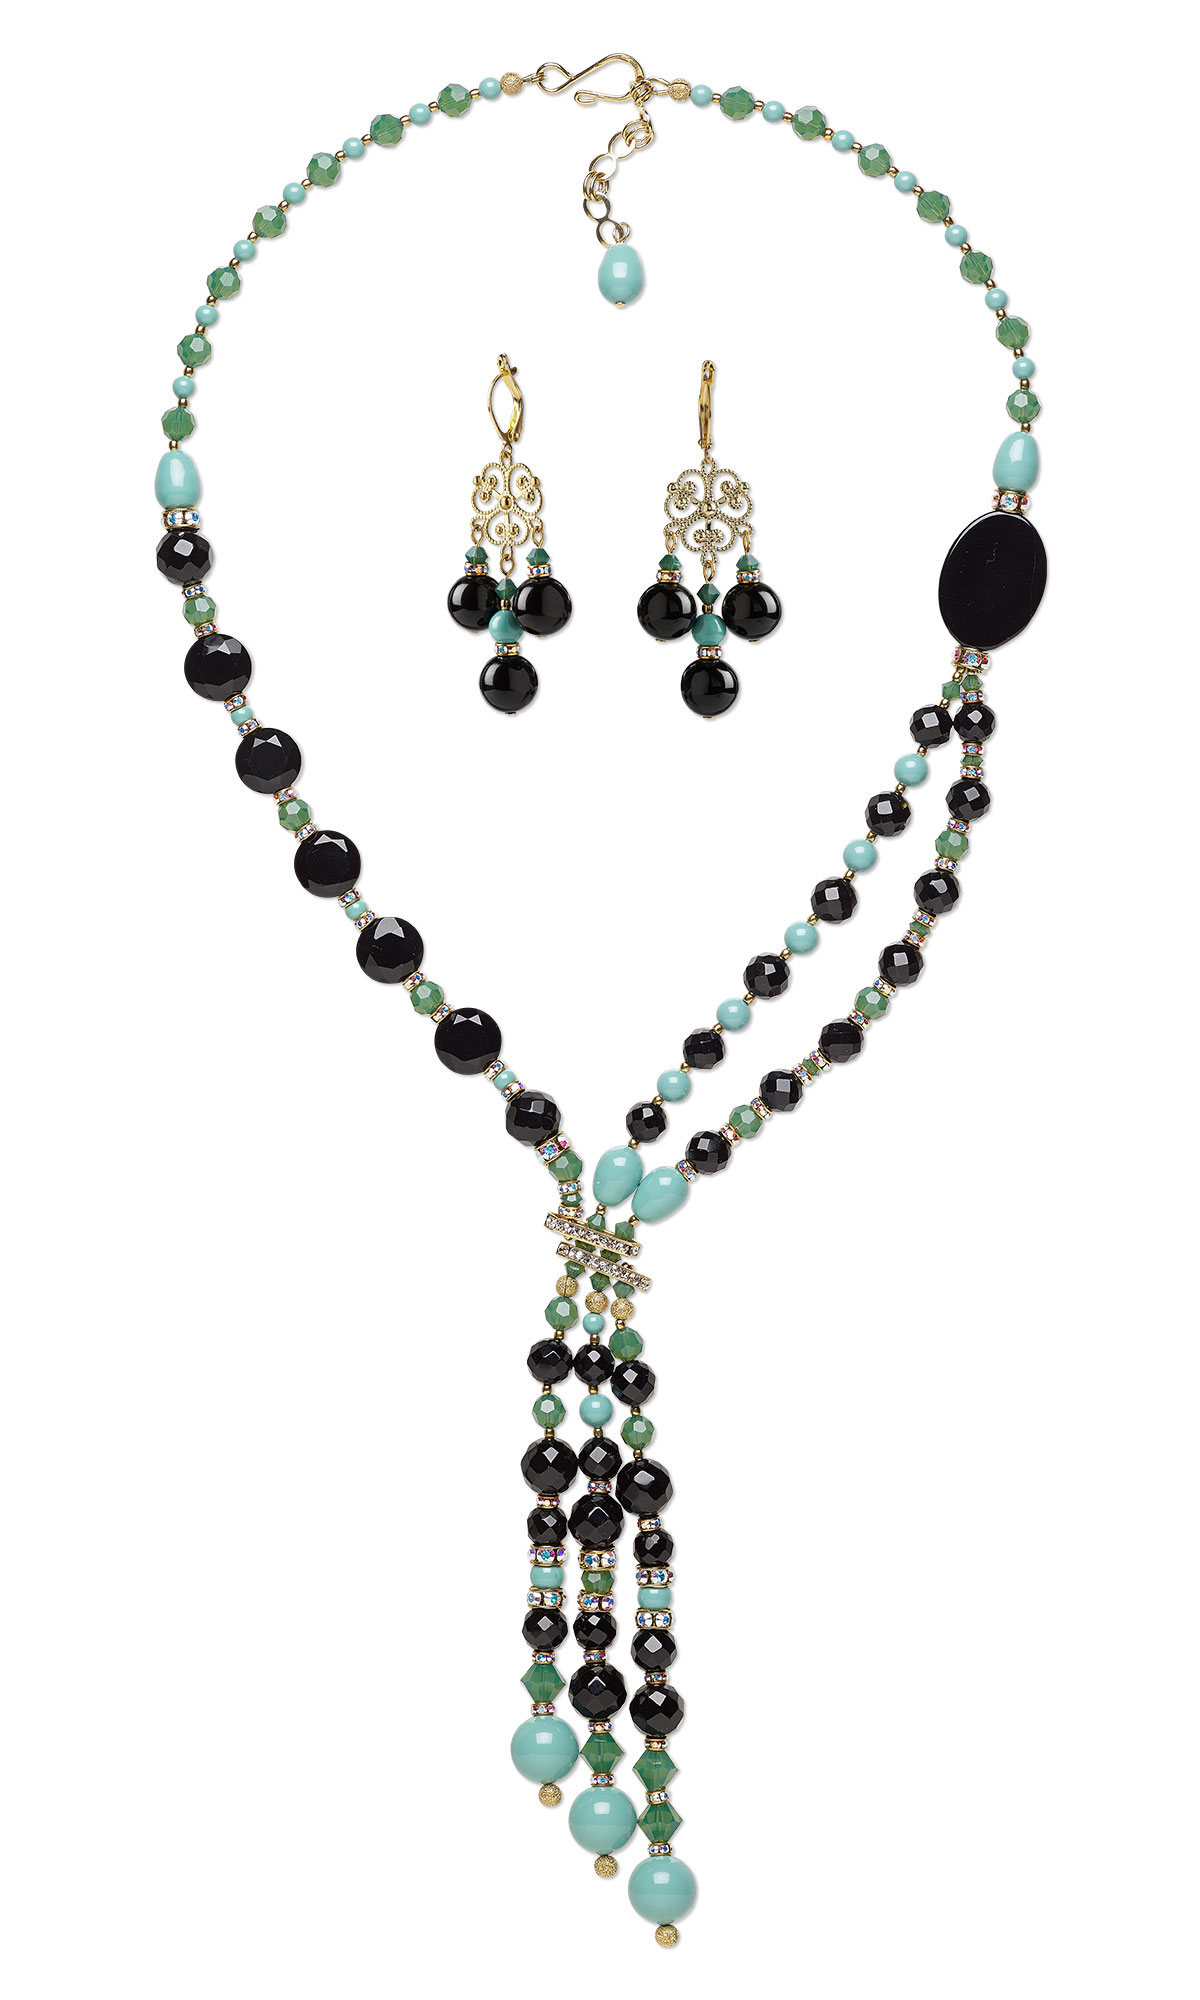 Jewelry Design Double Strand Necklace And Earring Set